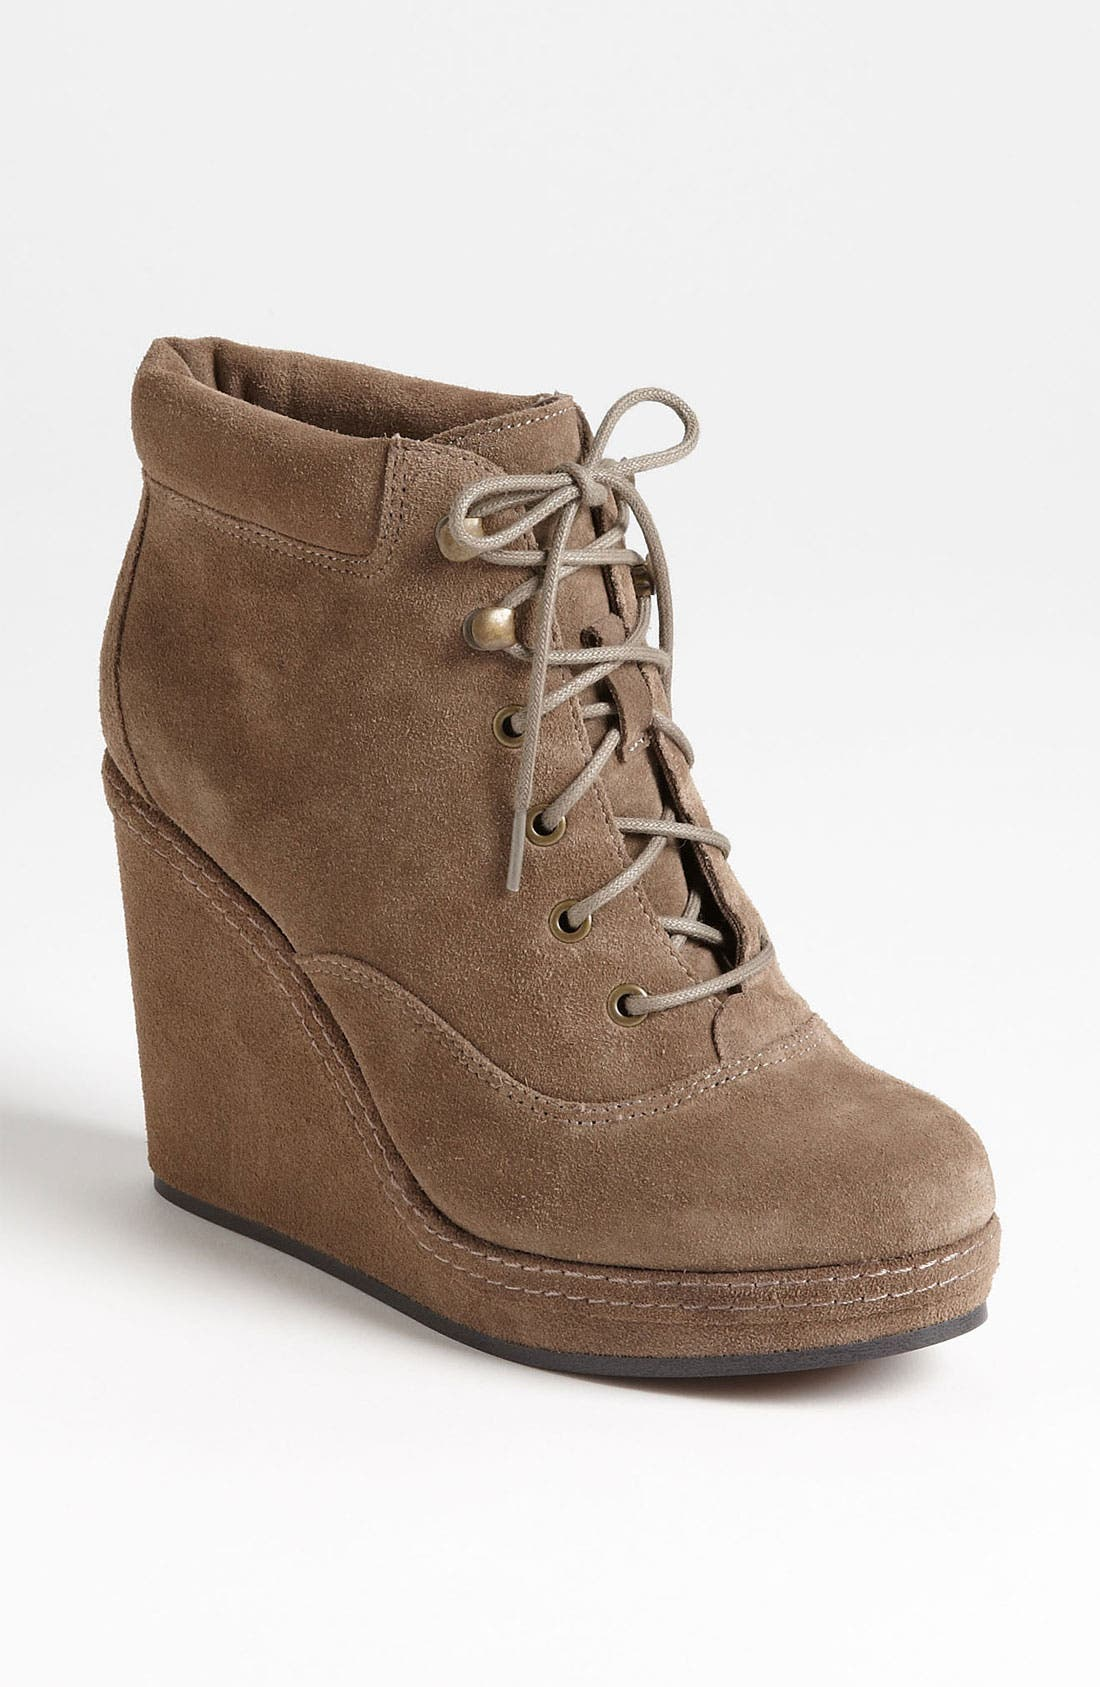 Alternate Image 1 Selected - Topshop 'Andreas' Wedge Boot